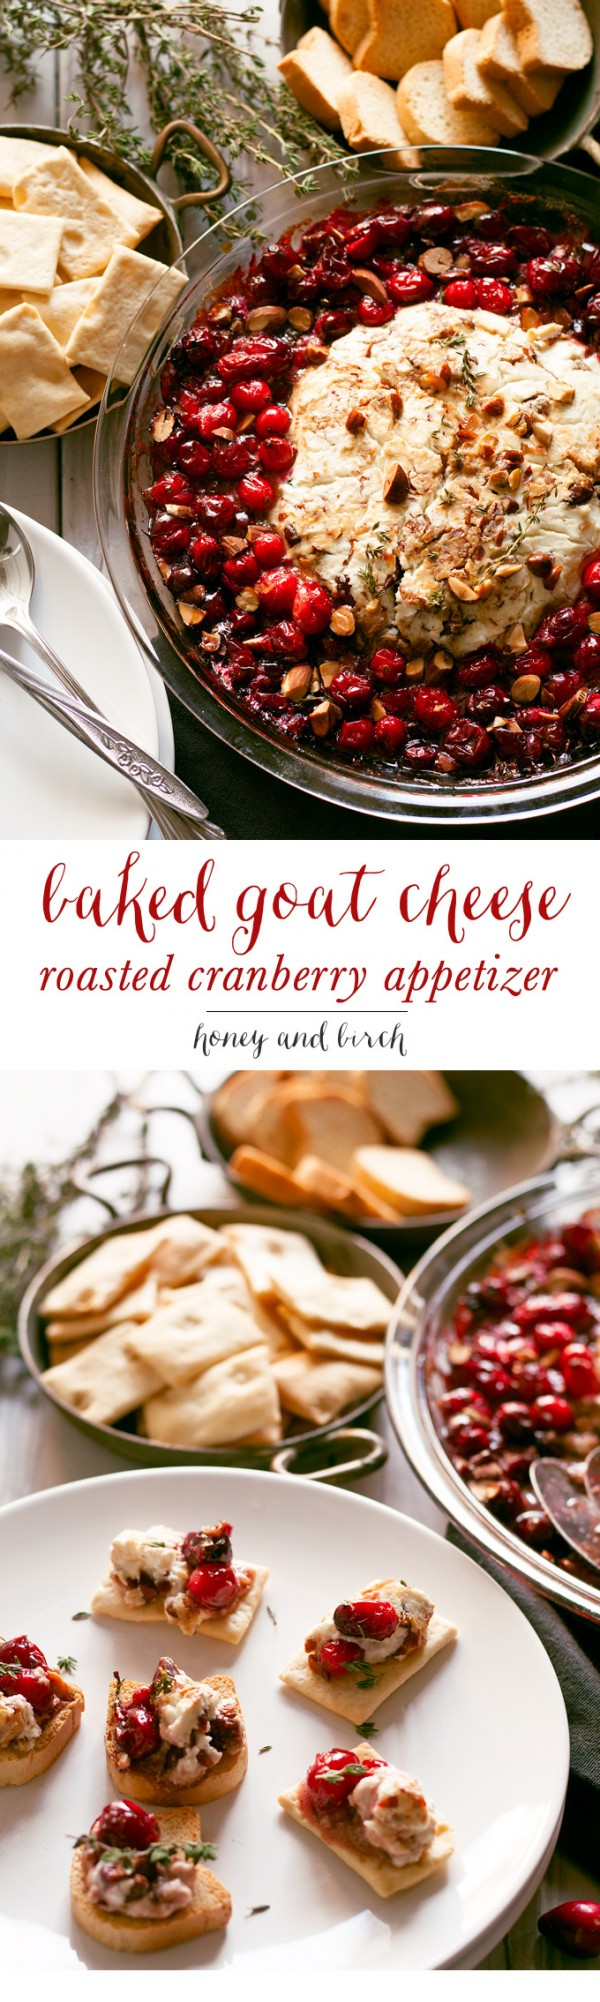 Get the recipe Baked Goat Cheese @recipes_to_go